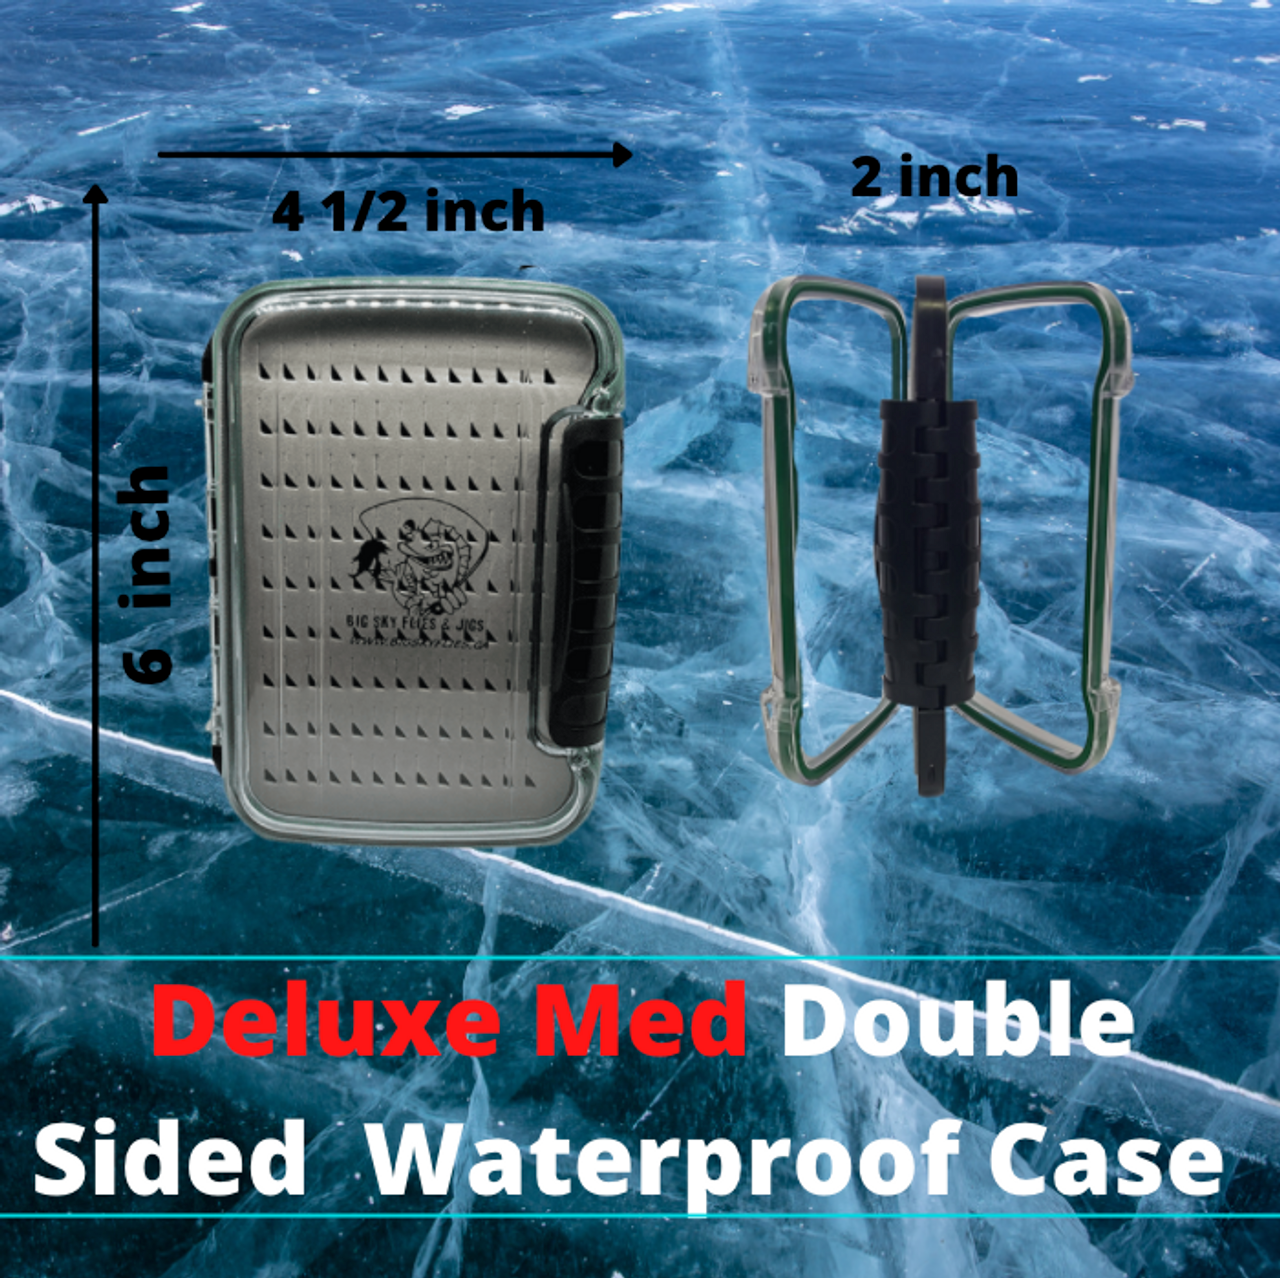 Waterproof Case DOUBLE Sided   Heavy-Duty two-Sided Tackle Storage Waterproof Seal High Compression Hook Clips Slotted Compression Foam for Protection or Extra Jig Storage   Fits Most 3/8 oz in Lighter Jigs and Most jigging Spoons     Great addition for any angler to keep your tackle safe and sound